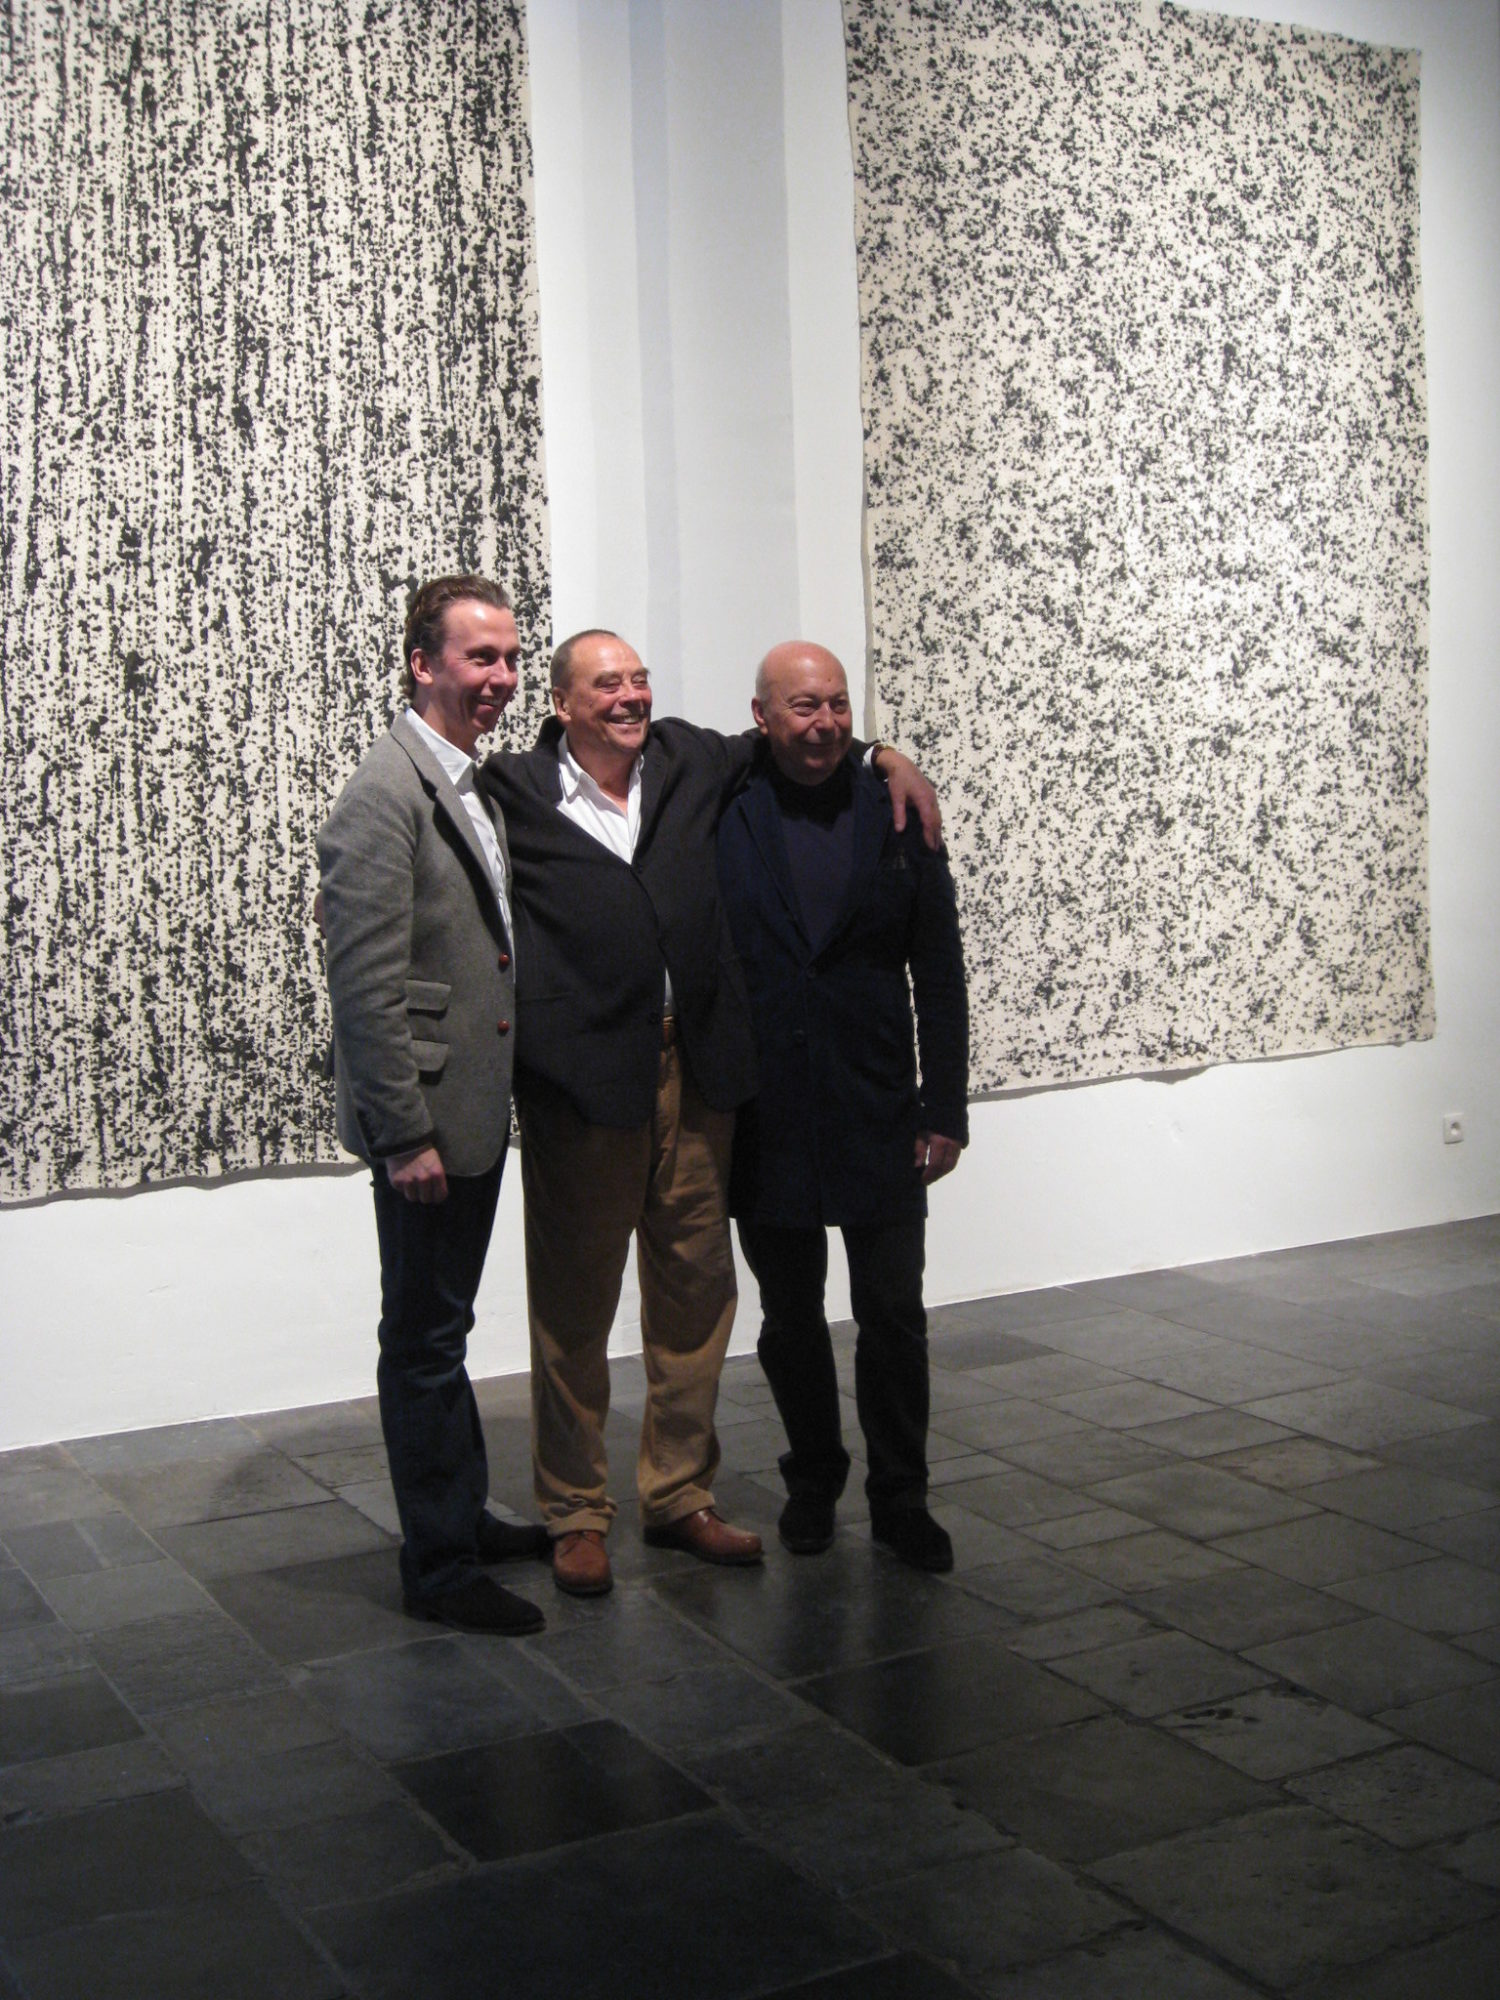 Boris Vervoordt, Günther Uecker, Axel Vervoordt stand if front of Uecker's work at the gallery in 2011.